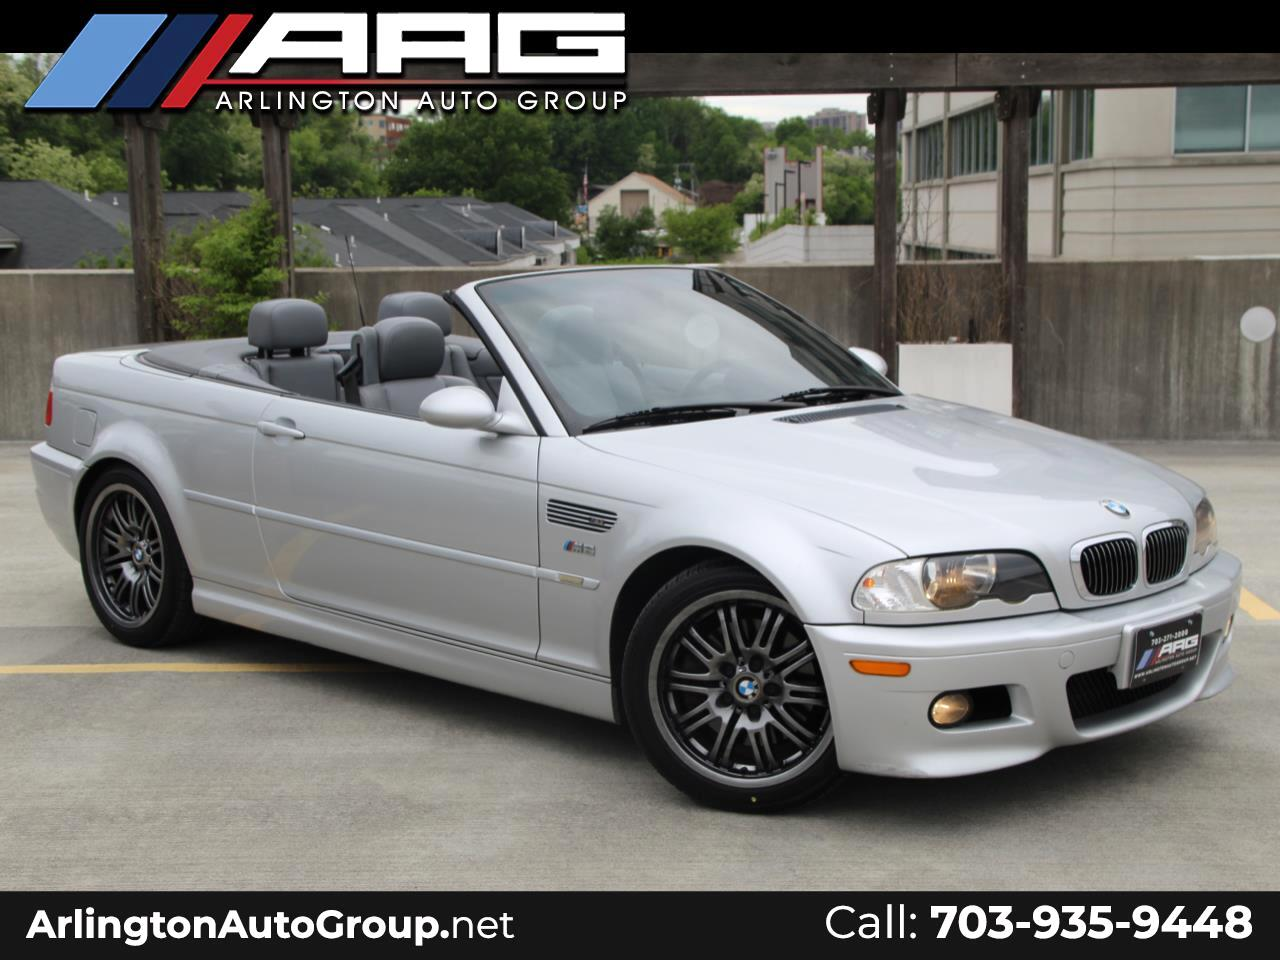 2005 BMW 3 Series M3 2dr Convertible